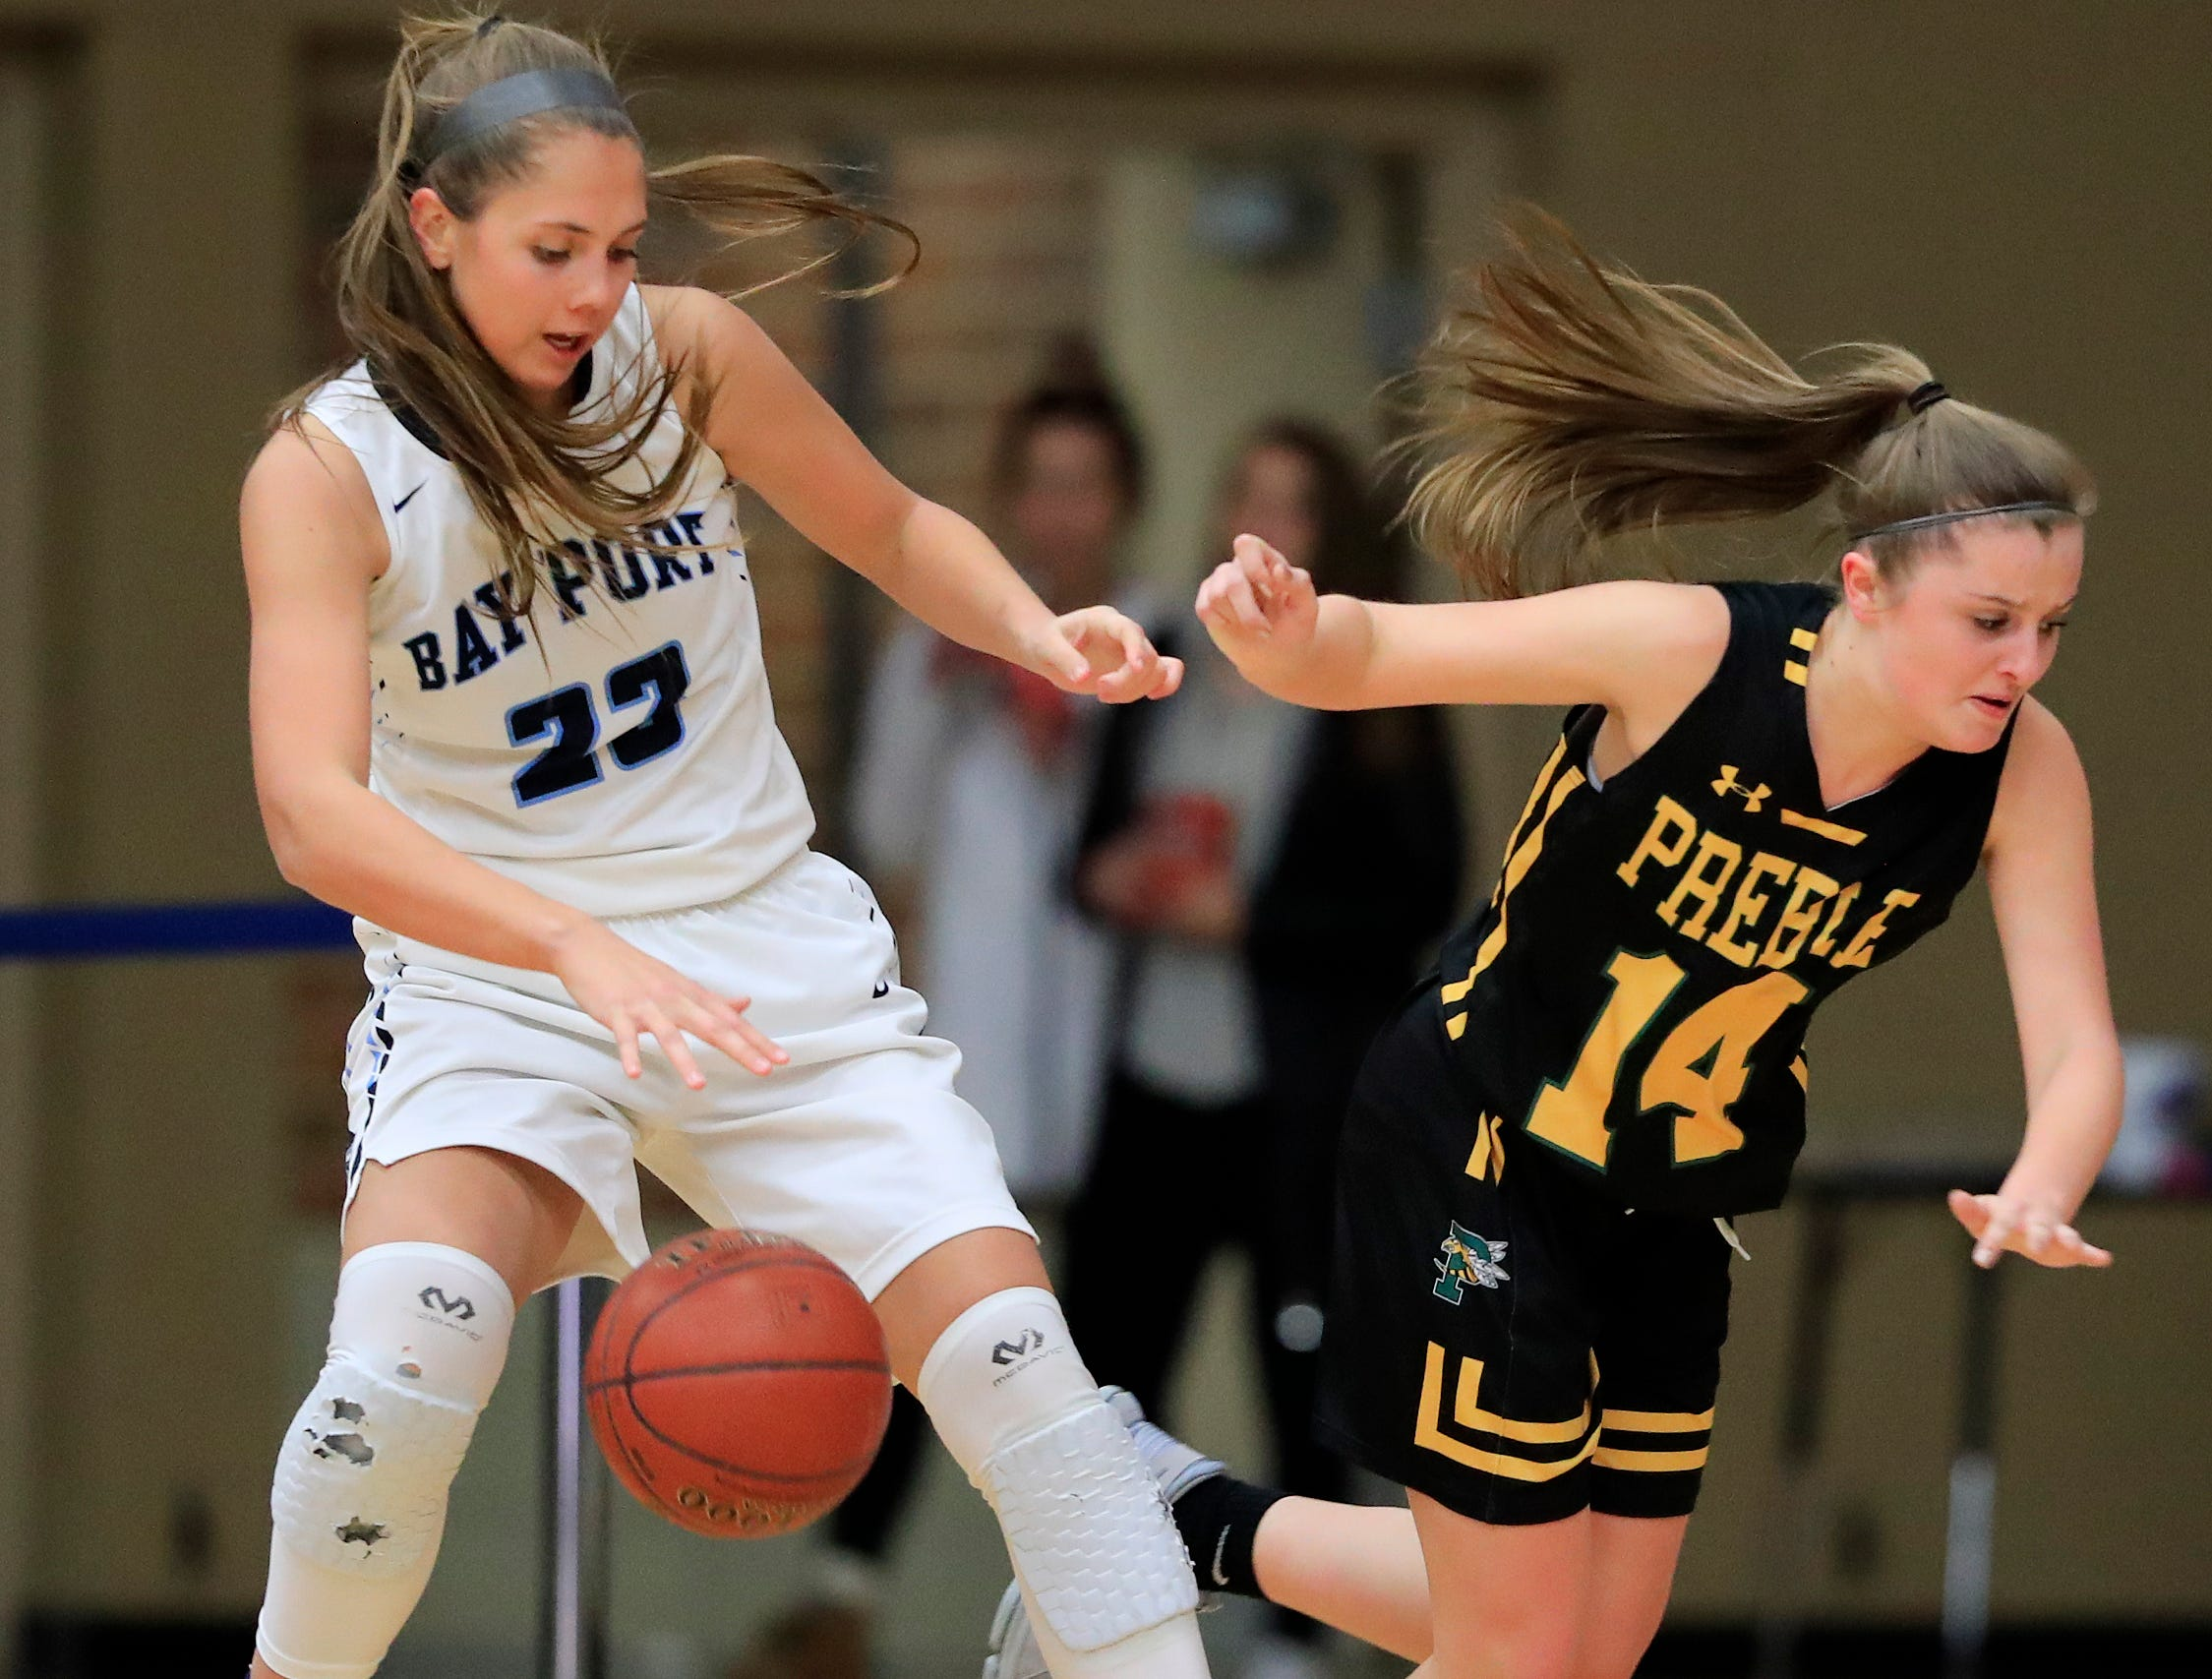 Bay Port's Emma Nagel (23) collides with Green Bay Preble's Taylor Sleger (14) in an FRCC girls basketball game at Bay Port high school on Friday, February 8, 2019 in Suamico, Wis.